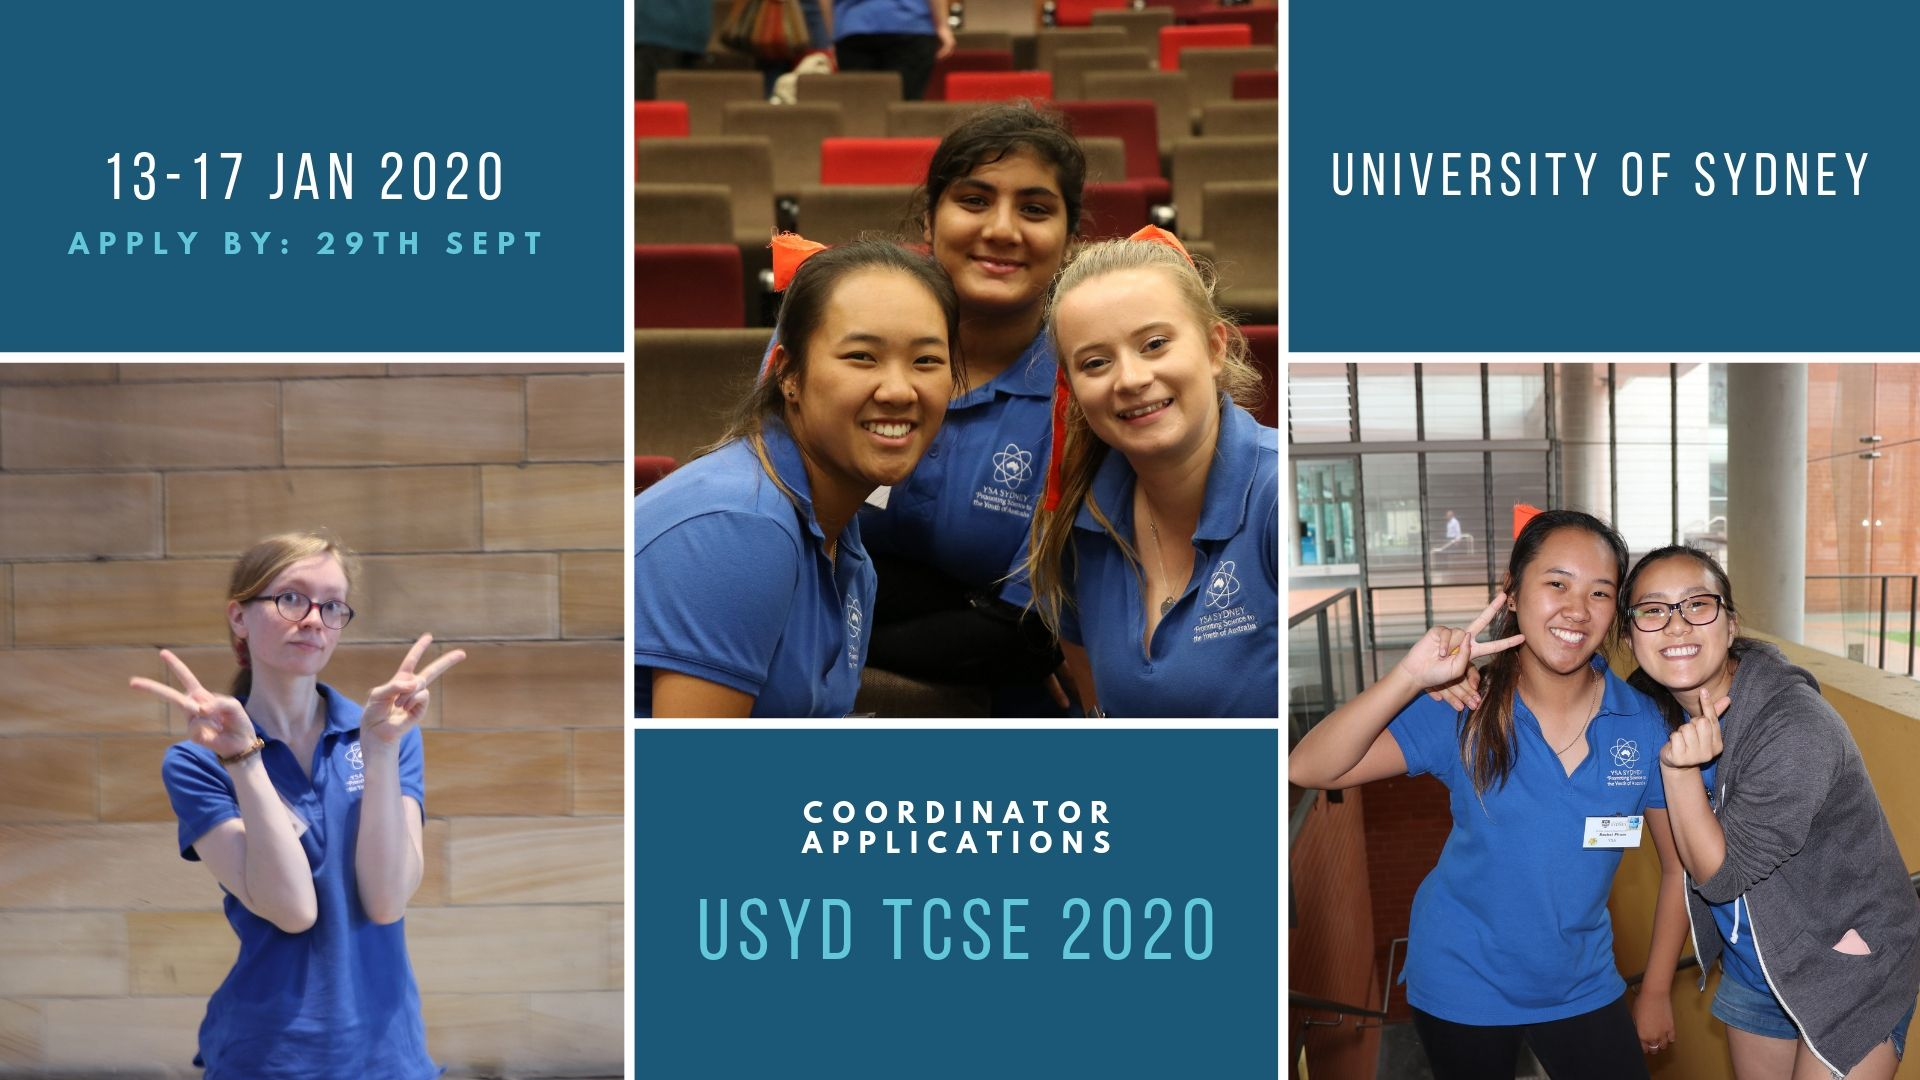 USyd TCSE 2020 Coordinator Applications